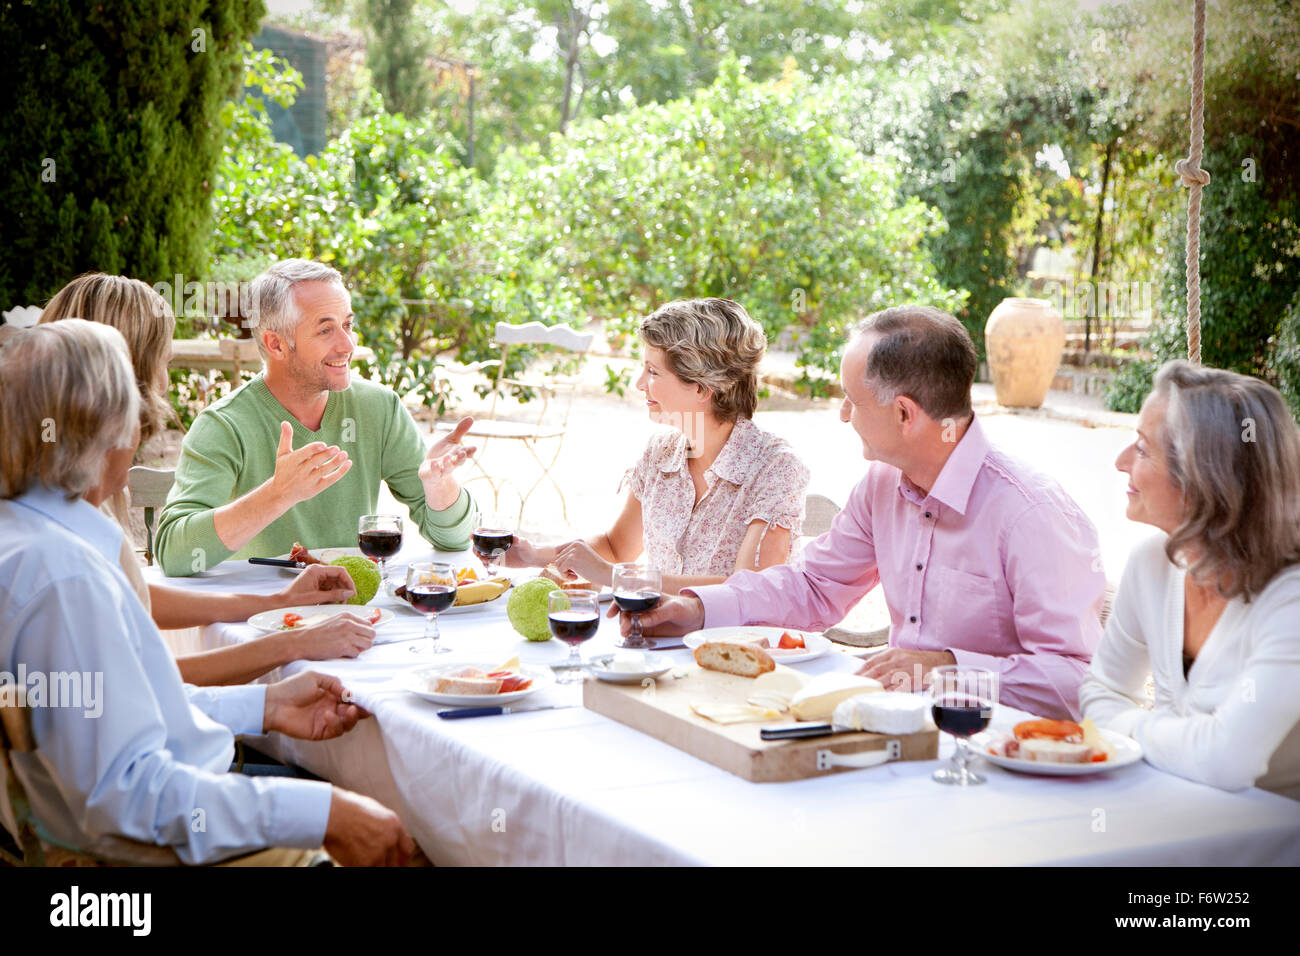 Spain, Mallorca, six friends sitting at laid table in the garden - Stock Image